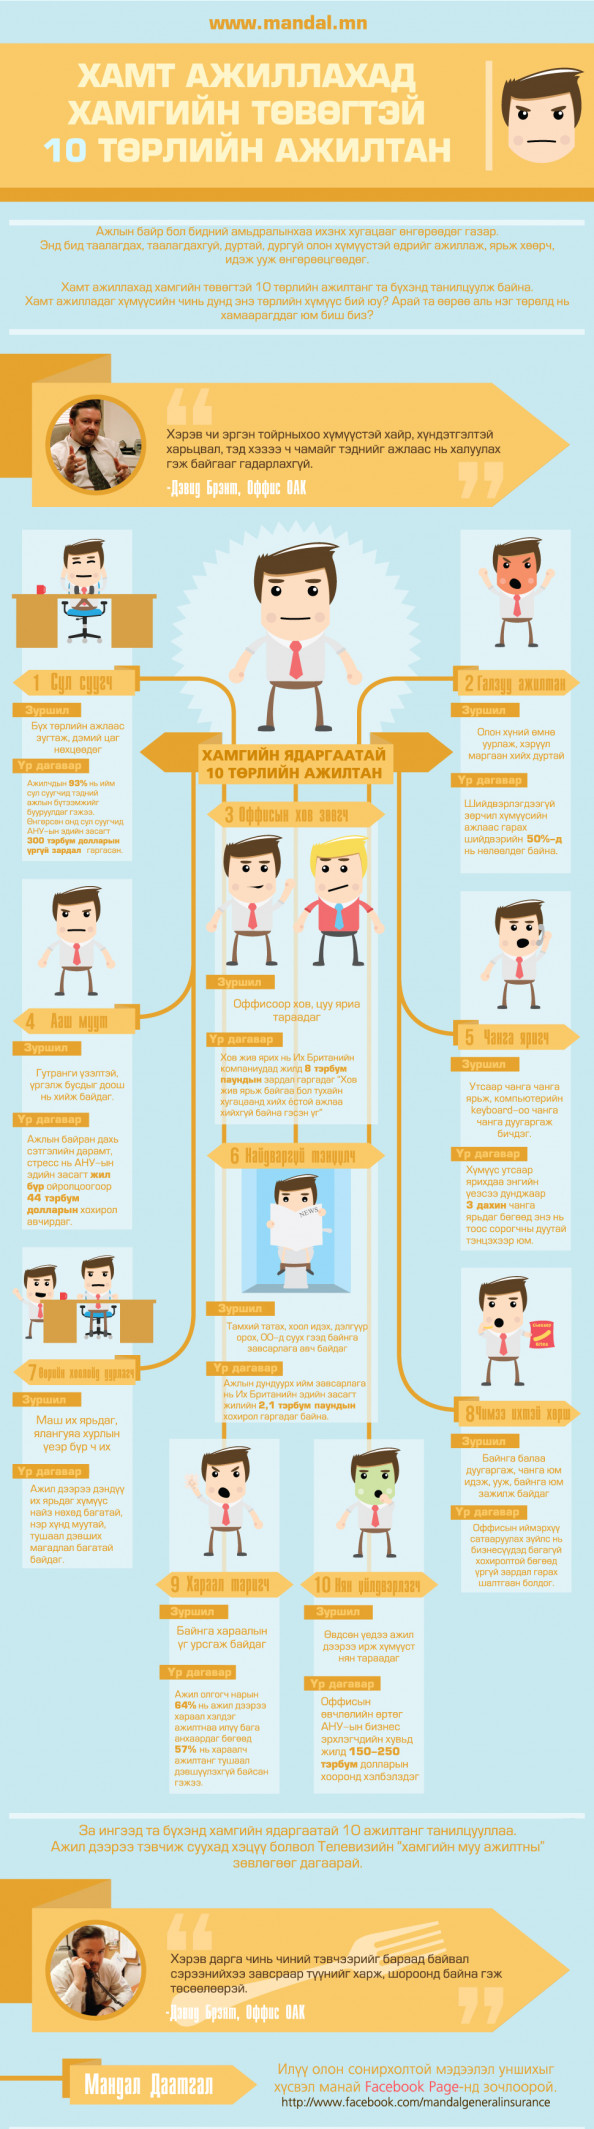 Annoying co-workers habits Infographic